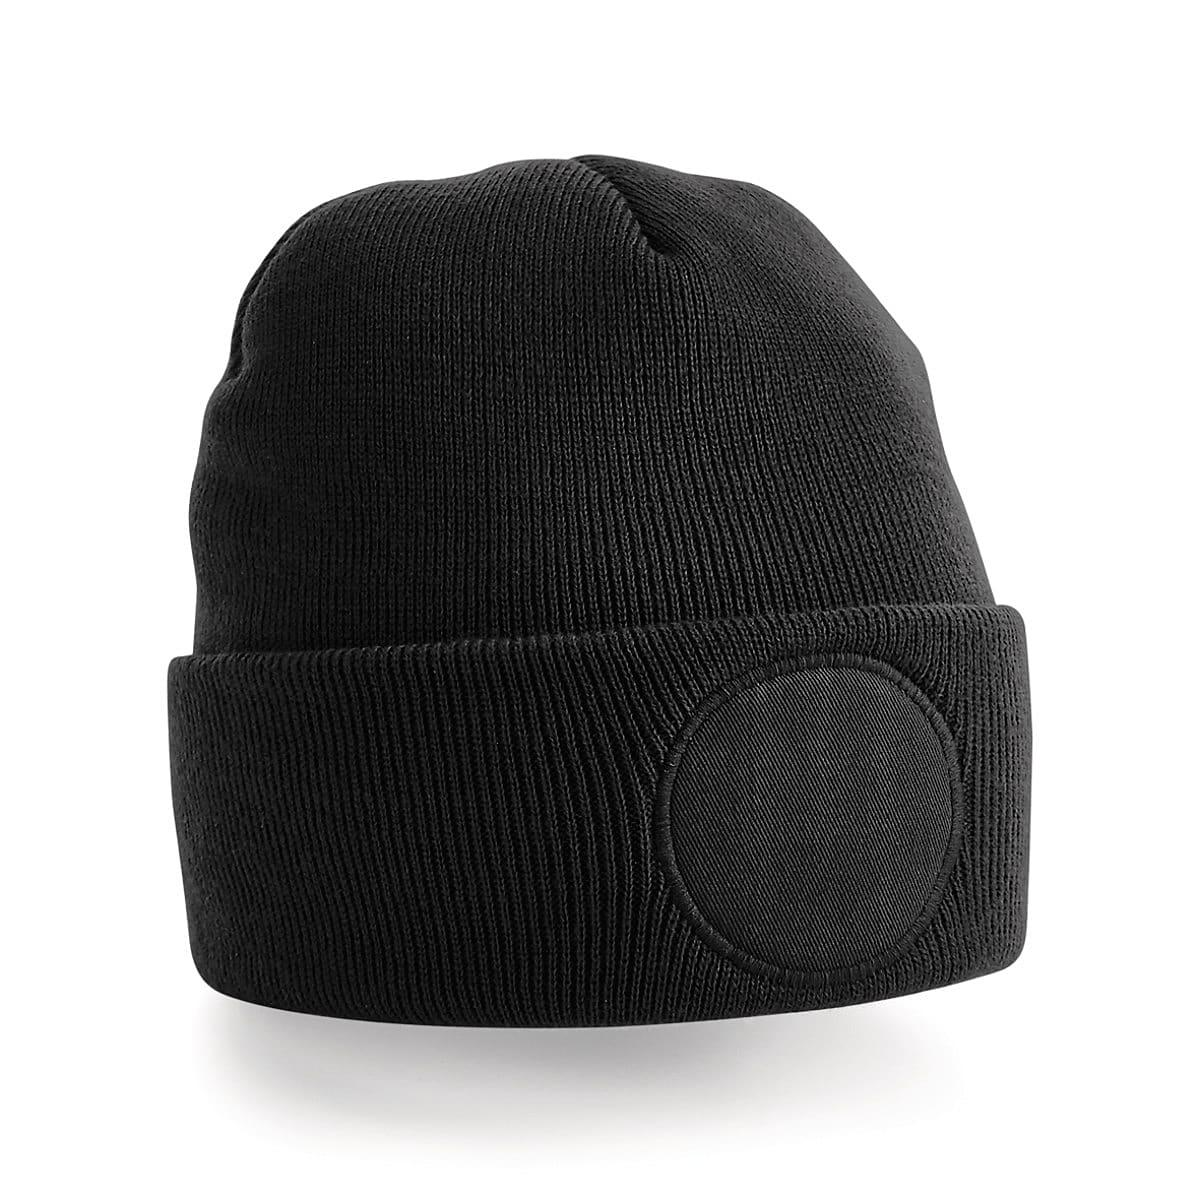 Beechfield Circular Patch Beanie Hat in Black (Product Code: B446)